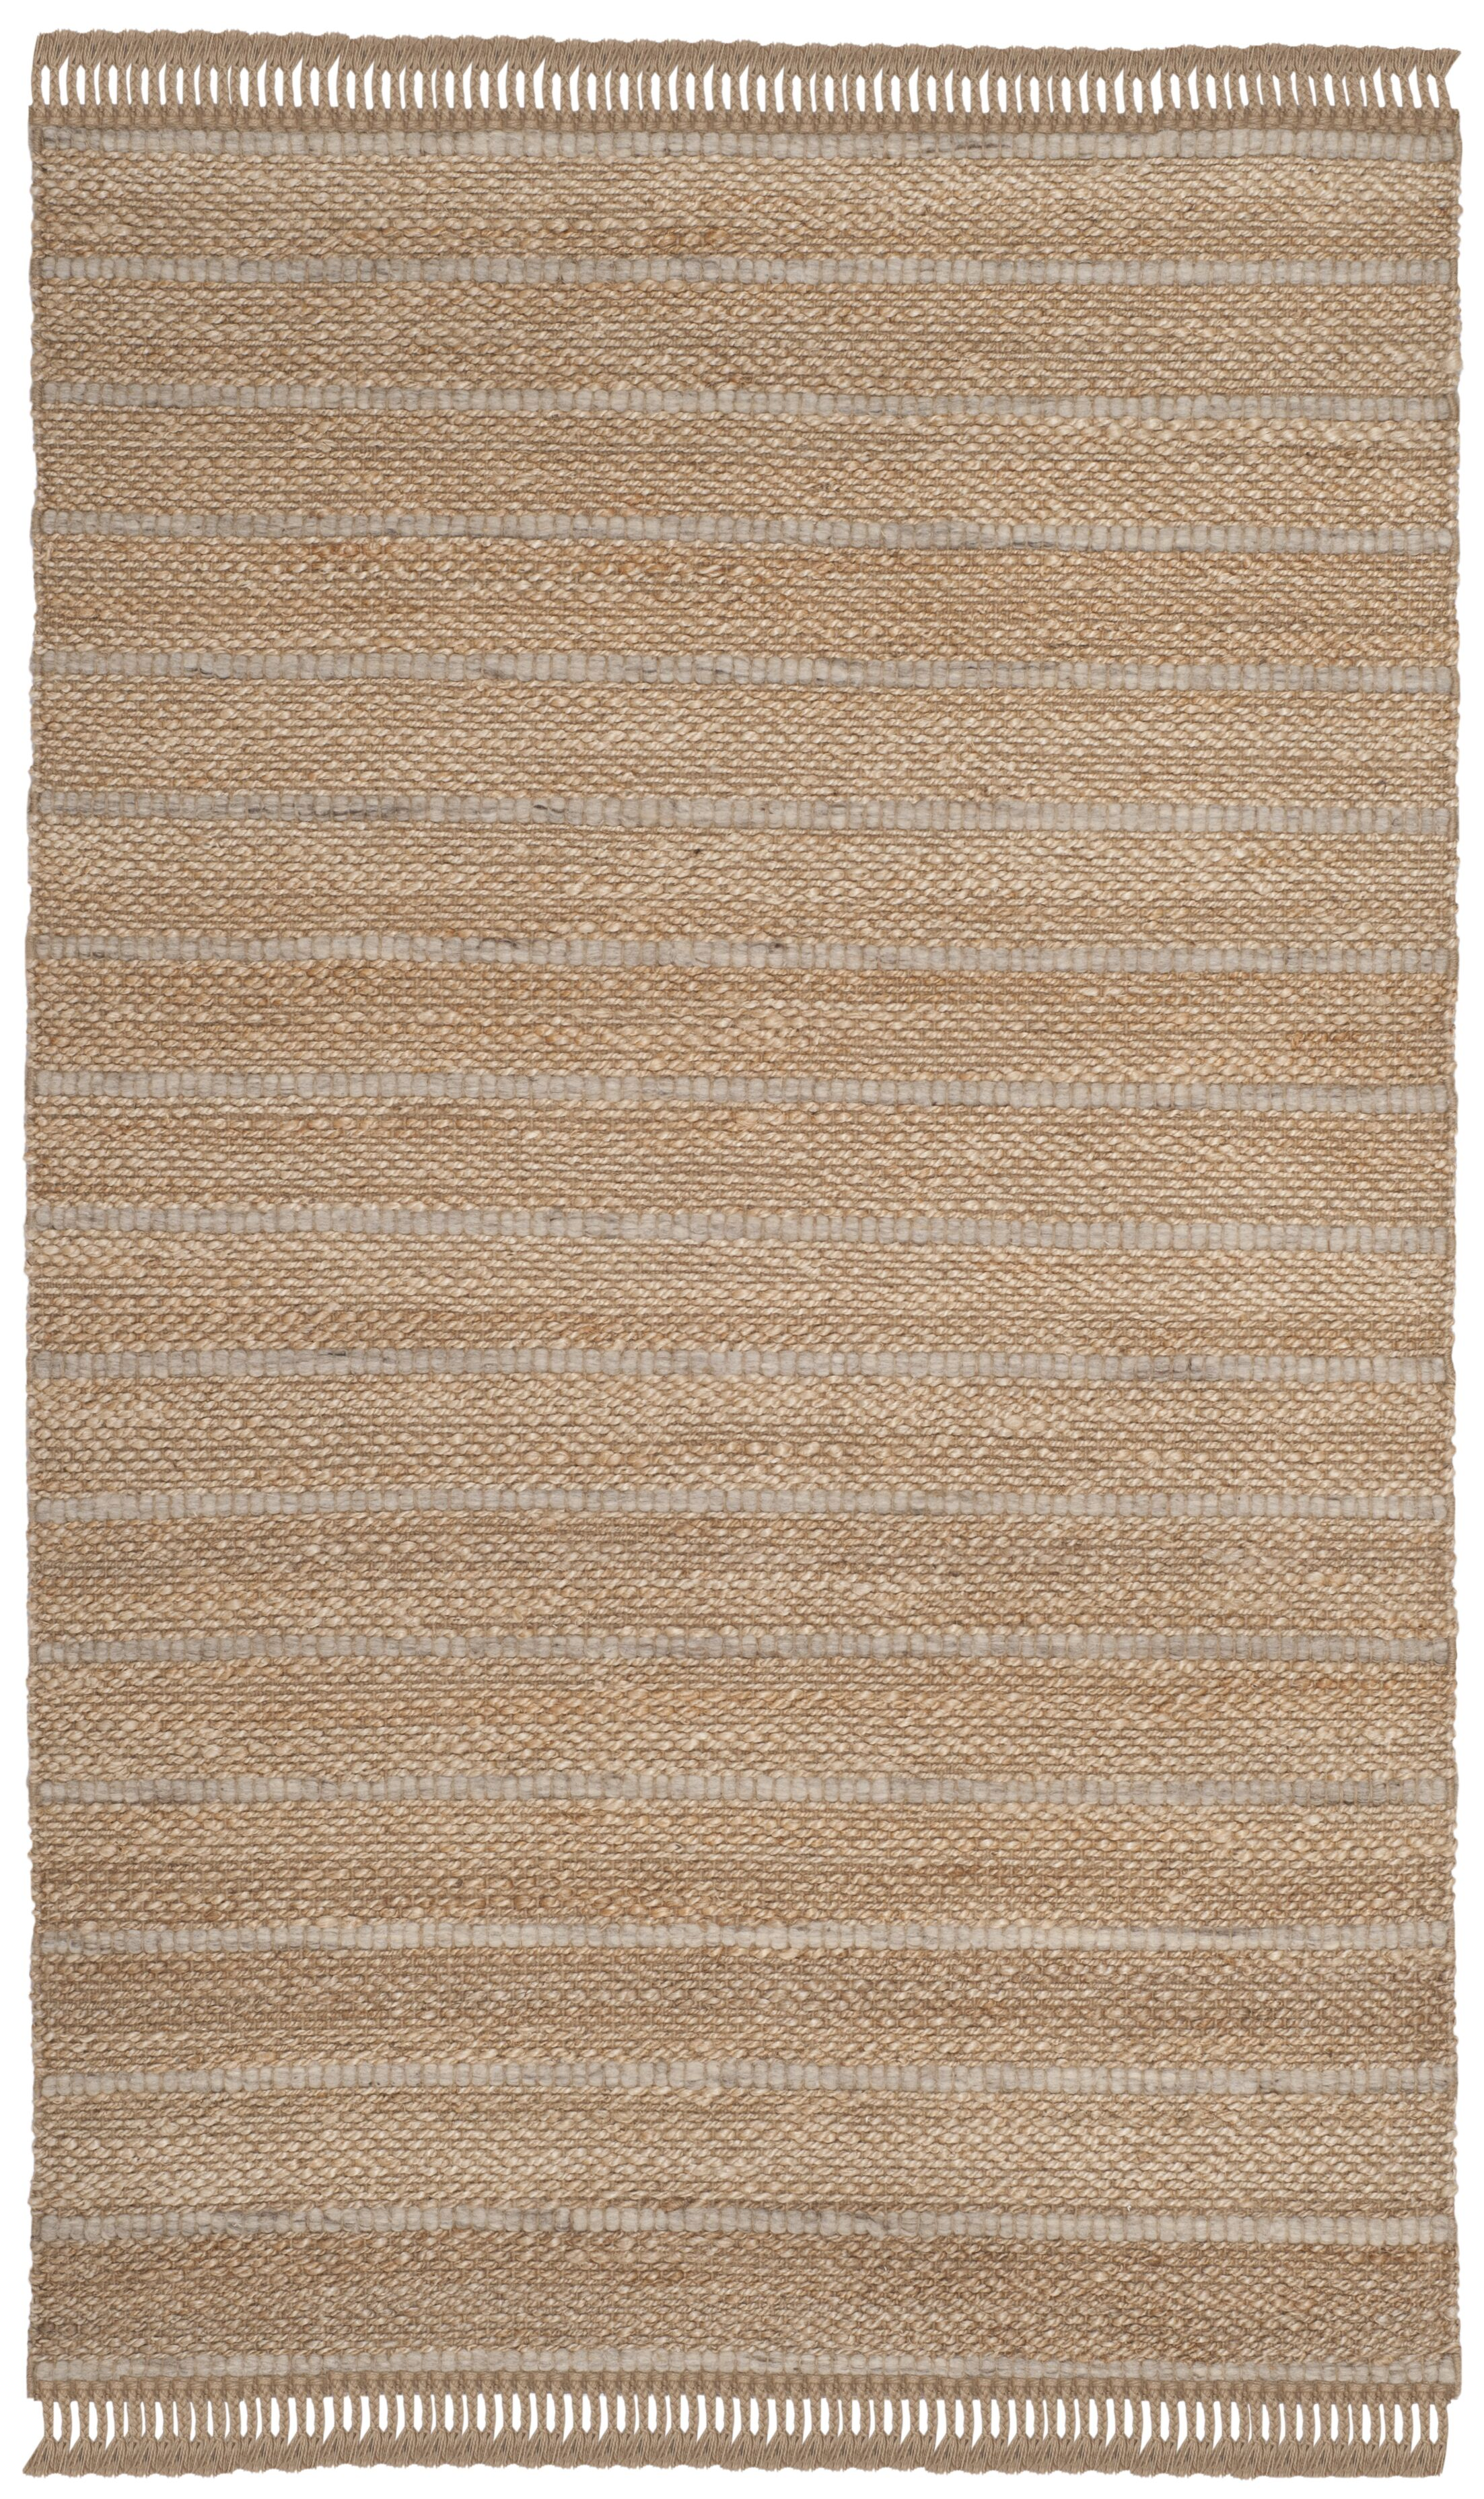 Lawtey Fiber Hand Woven Beige Area Rug  Rug Size: Rectangle 4' x 6'